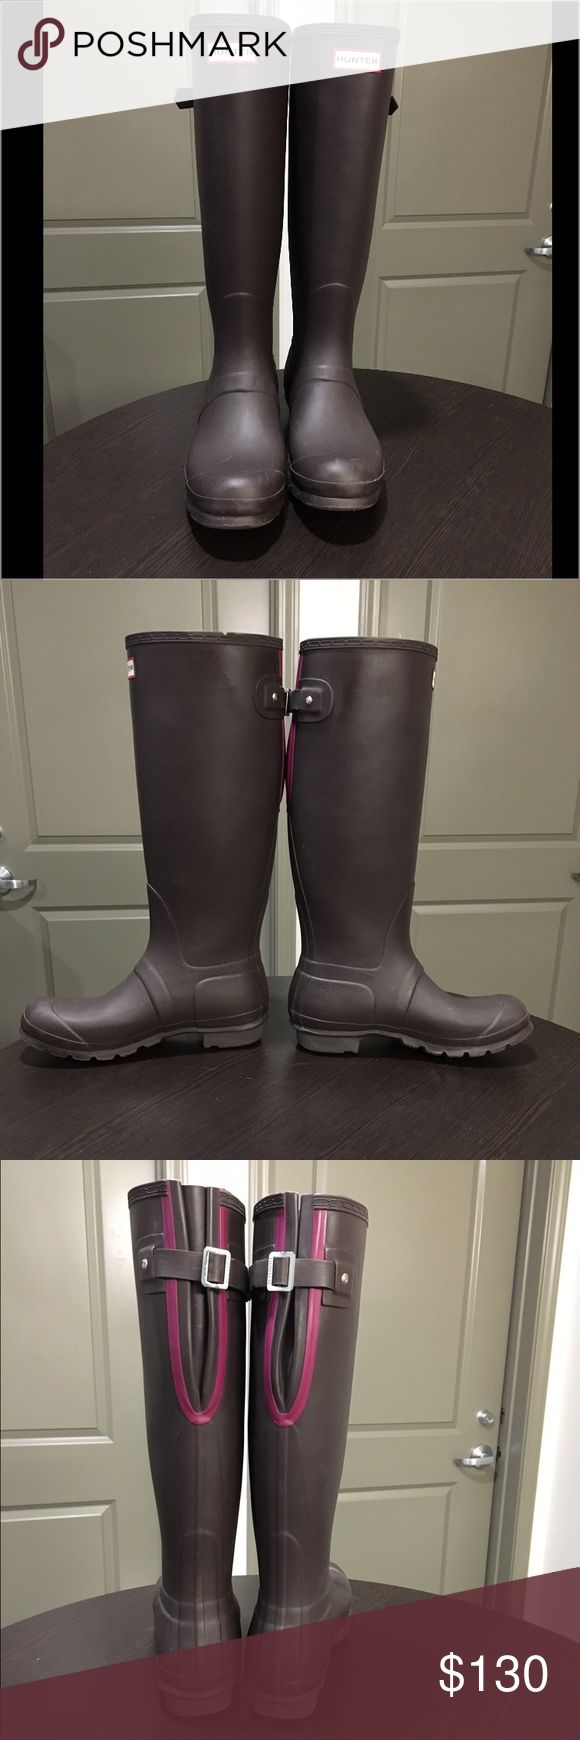 Dark Brown Hunter Rain boot. Size 9. Dark brown, tall Hunter rain boot. Size 9. Worn very few times, size is too large for me. Pink detail on back. Looks almost black, it is a very dark brown color. Hunter Boots Shoes Winter & Rain Boots